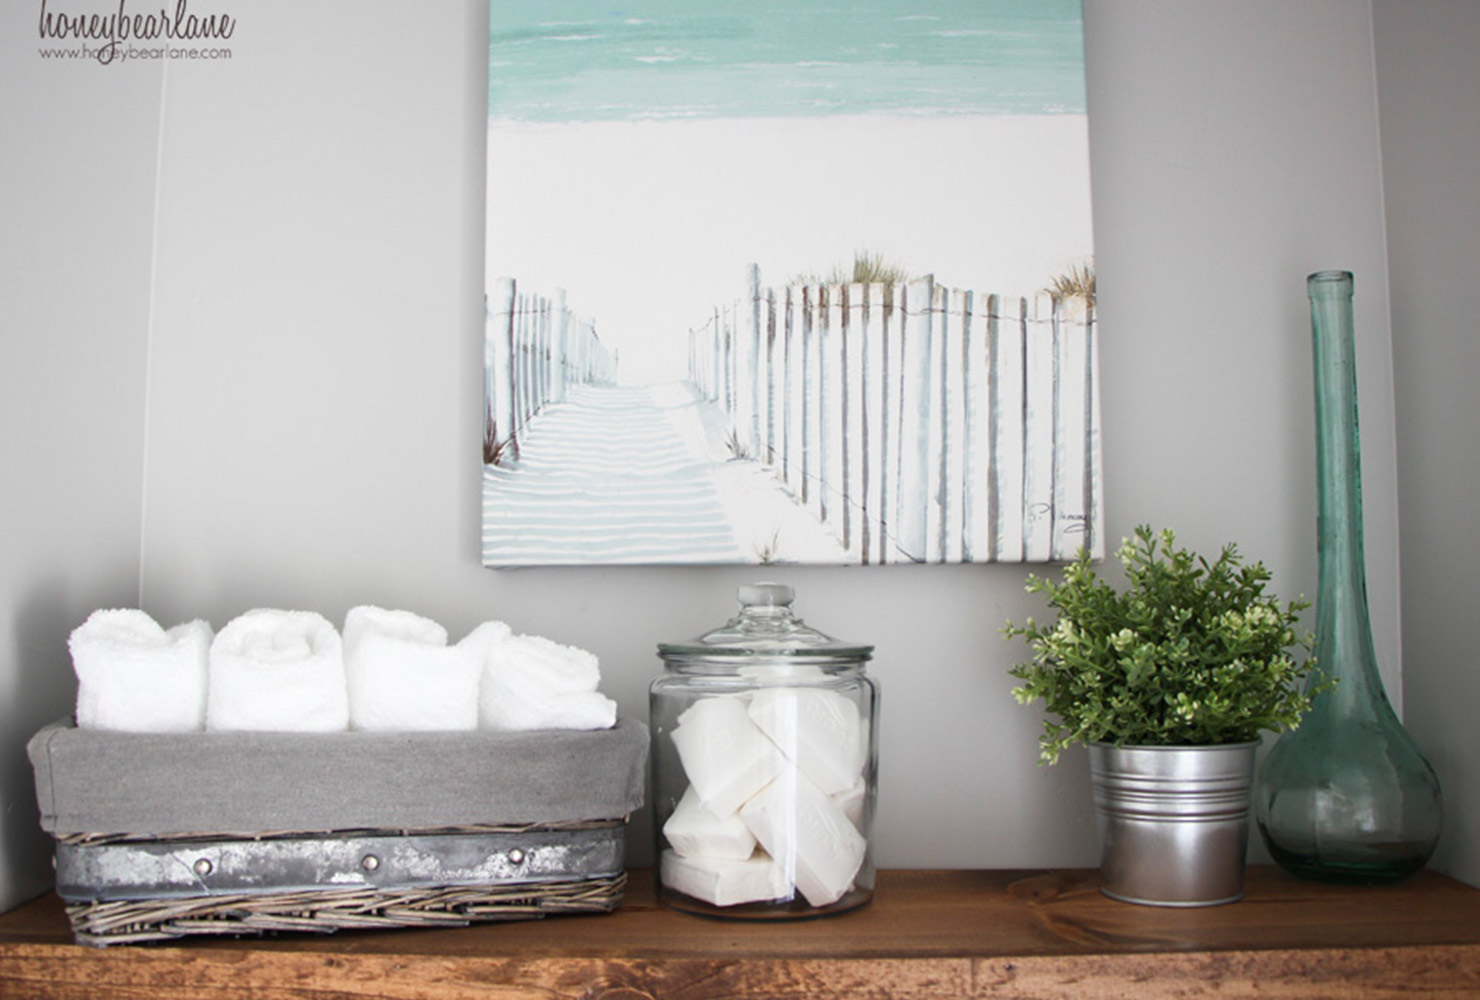 Bathroom Decoration Idea by Honey Bear Lane - Shutterfly